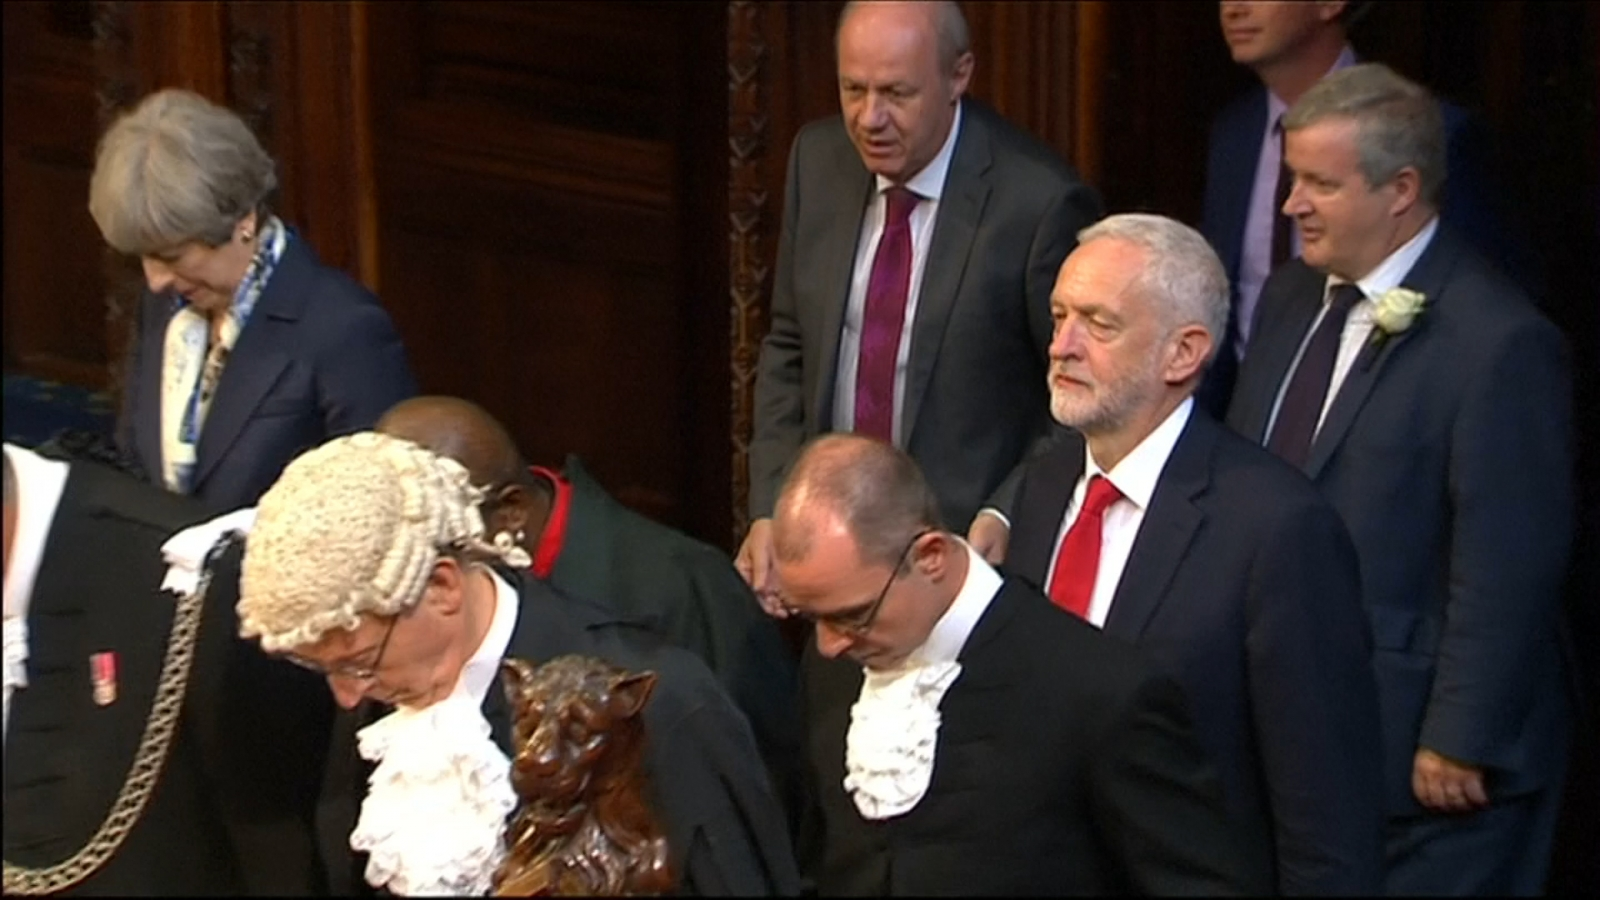 Jeremy Corbyn does not bow during Queen's Speech